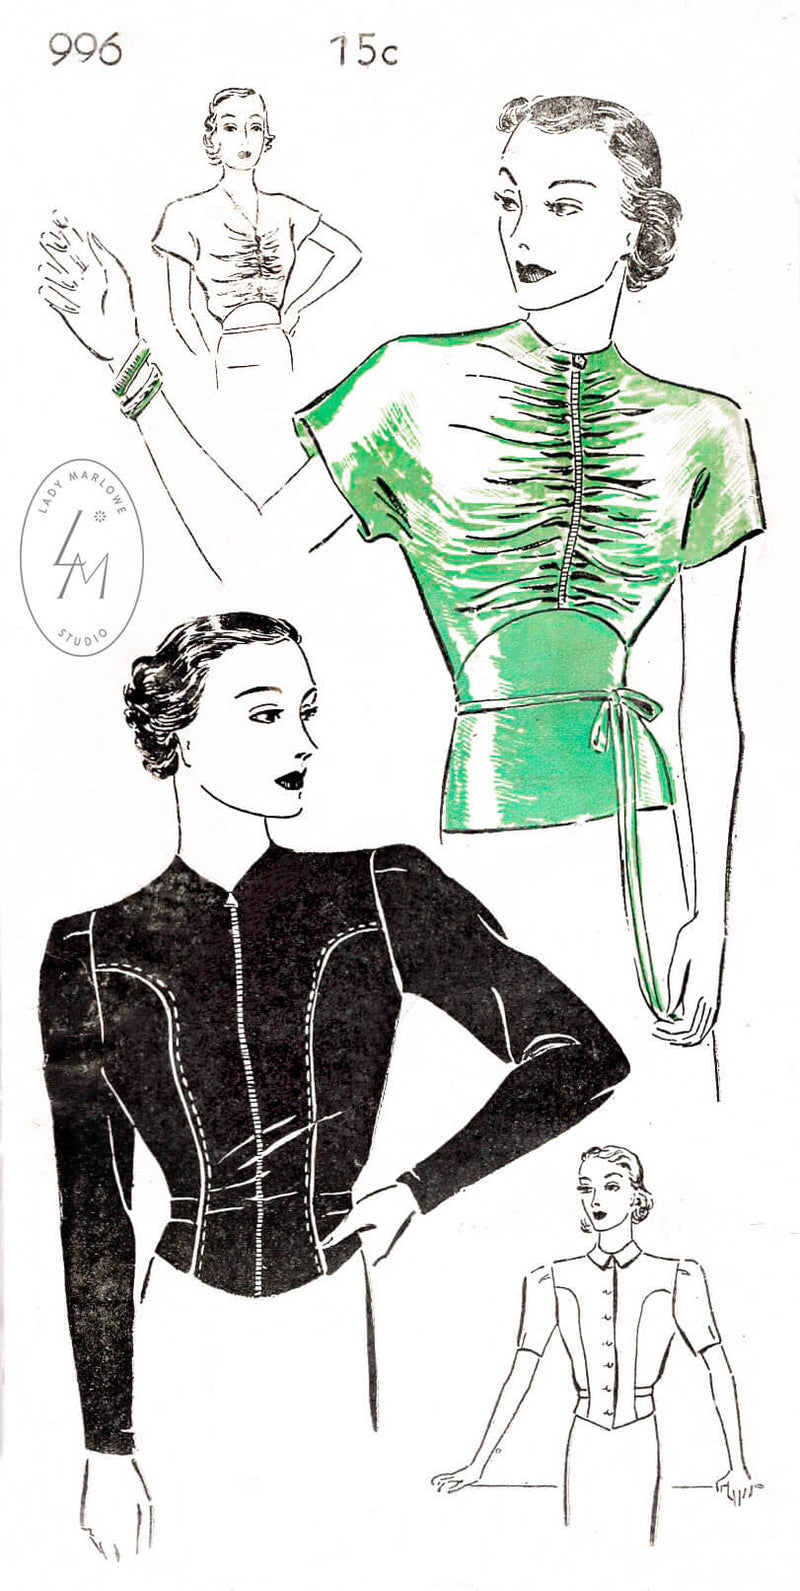 New York Pattern 996 set of blouses in 4 styles, front ruching, girdle waist, long sleeves, short puff sleeves. Vintage sewing pattern reproduction